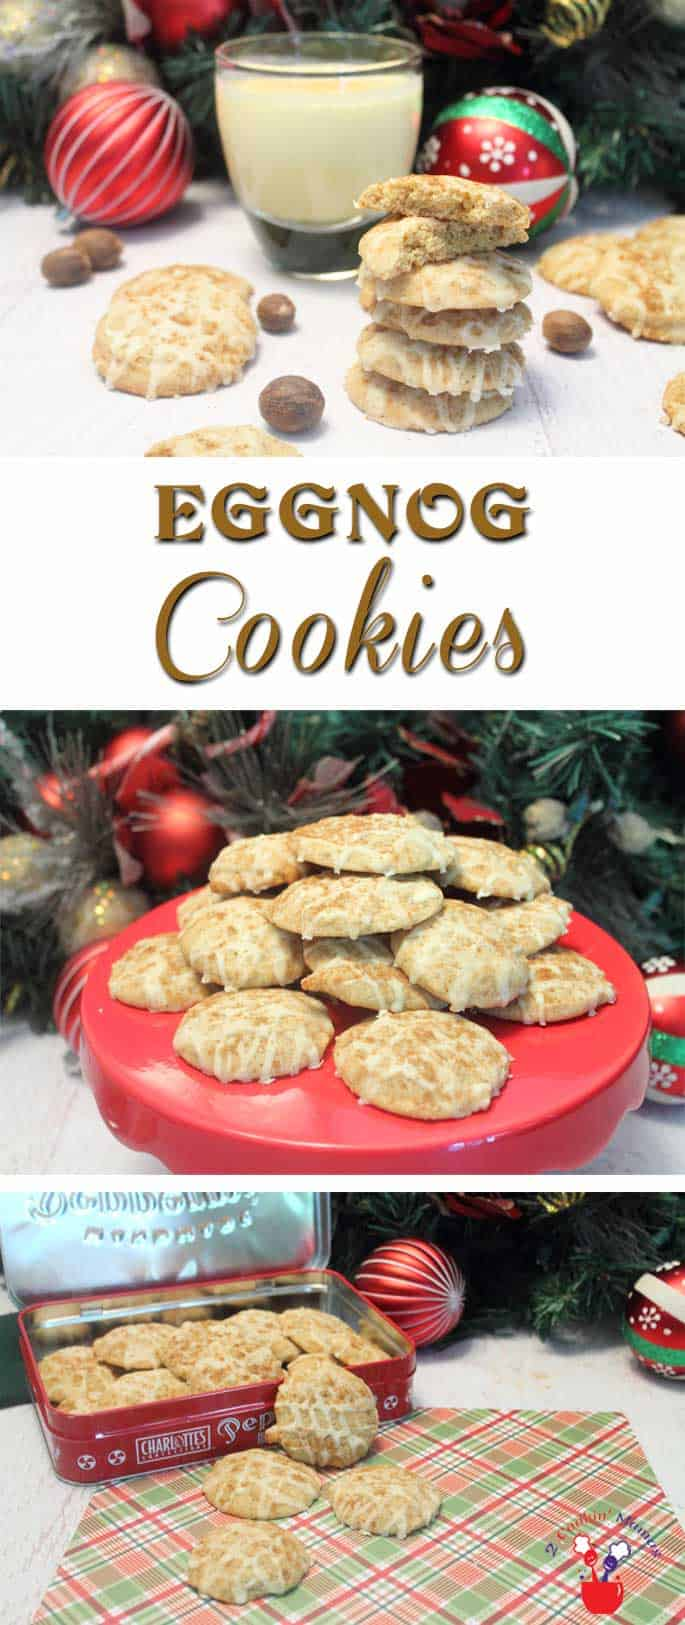 Eggnog Cookies | 2 Cookin Mamas Bake up these deliciously soft & spicy cookies with all the rich flavor of eggnog combined with nutmeg, cinnamon and a touch of rum. #recipe